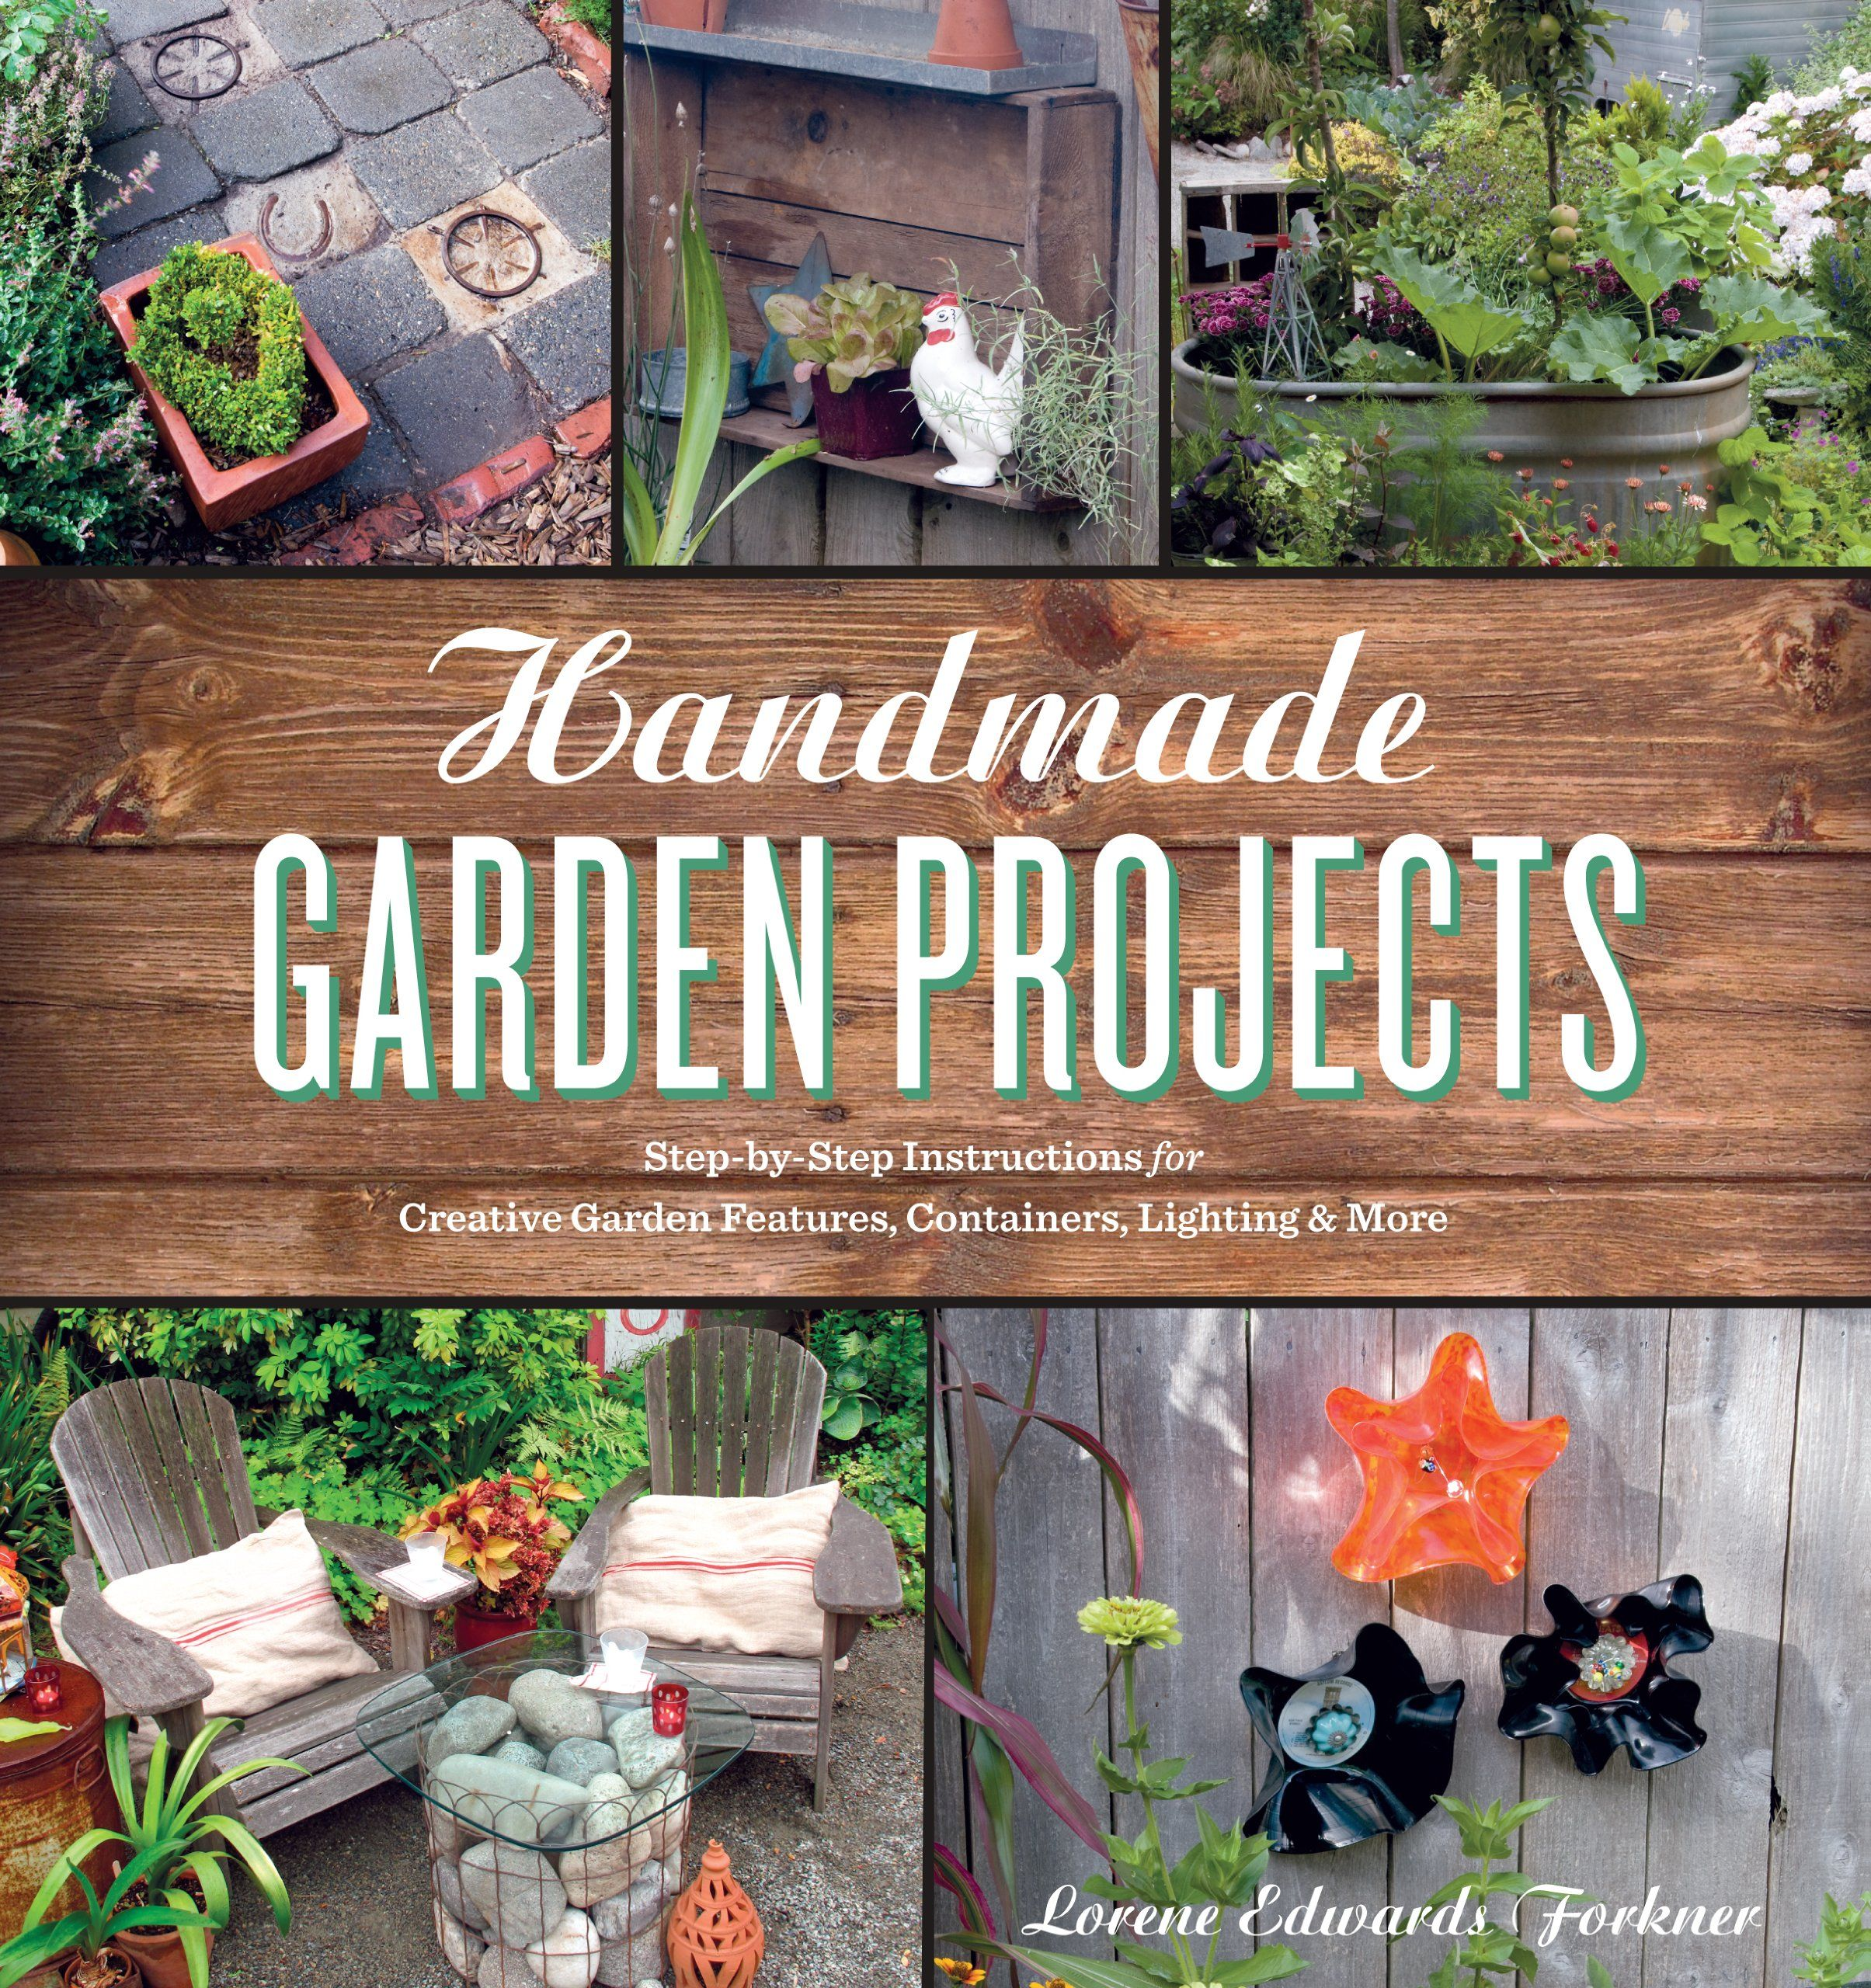 handmade garden projects step by step instructions for creative